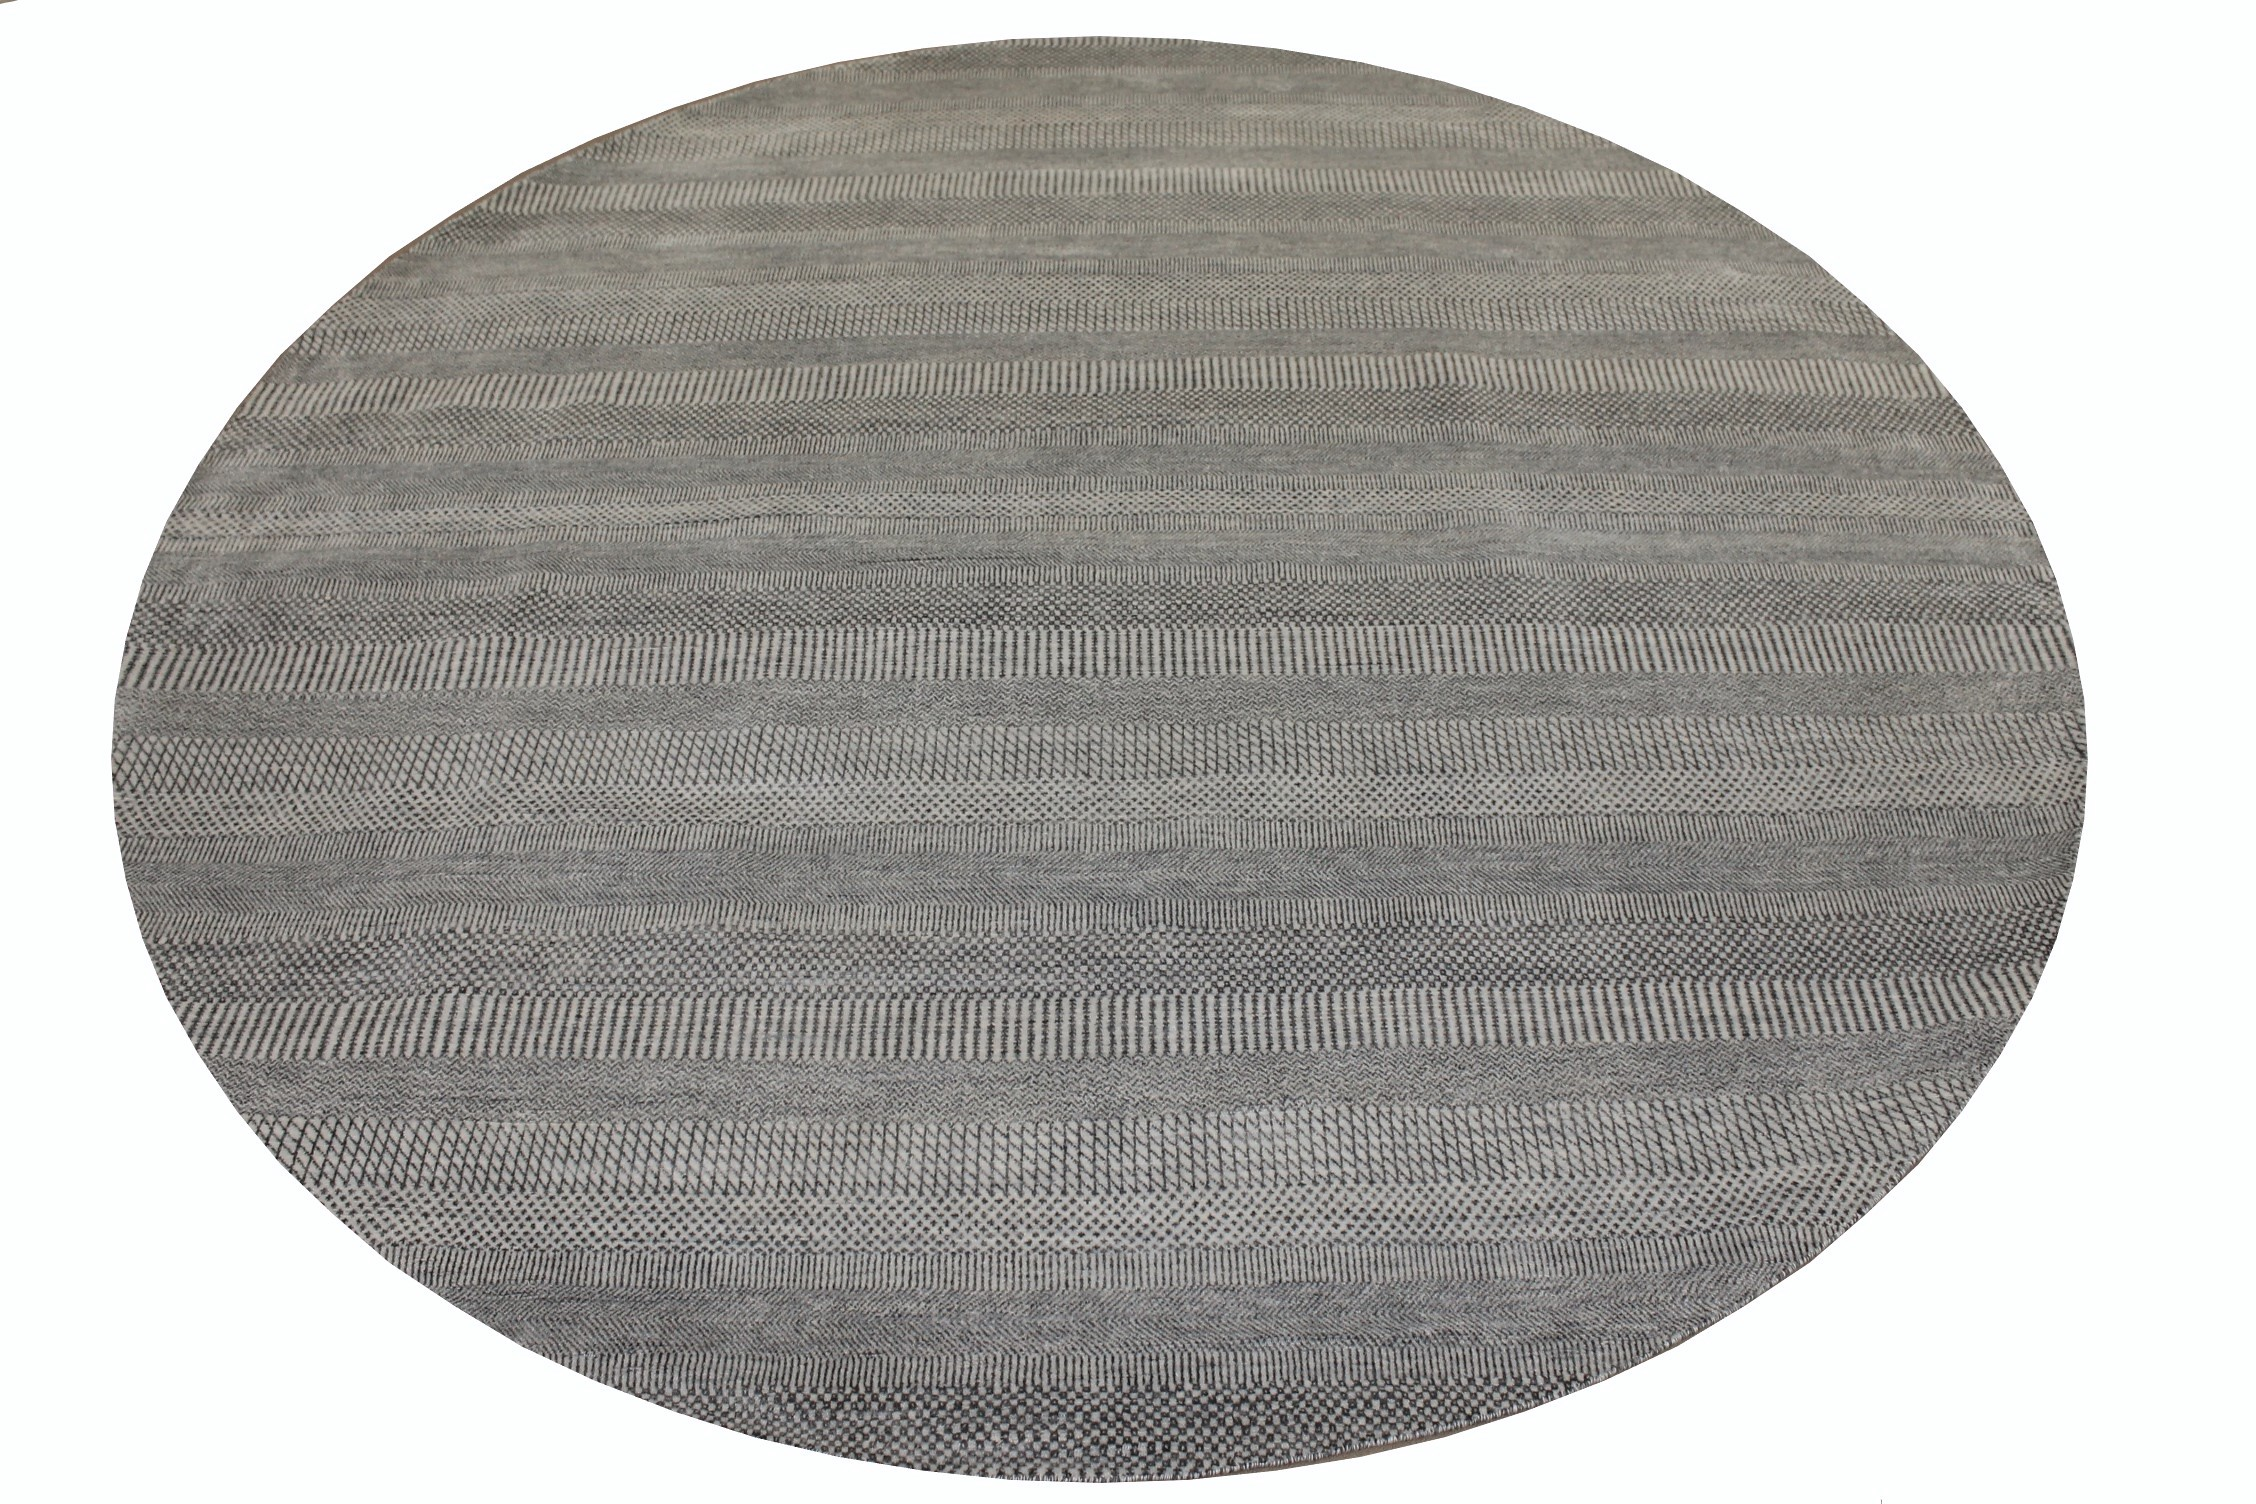 9 ft. & Over Round & Square Casual Hand Knotted Wool & Viscose Area Rug - MR024927